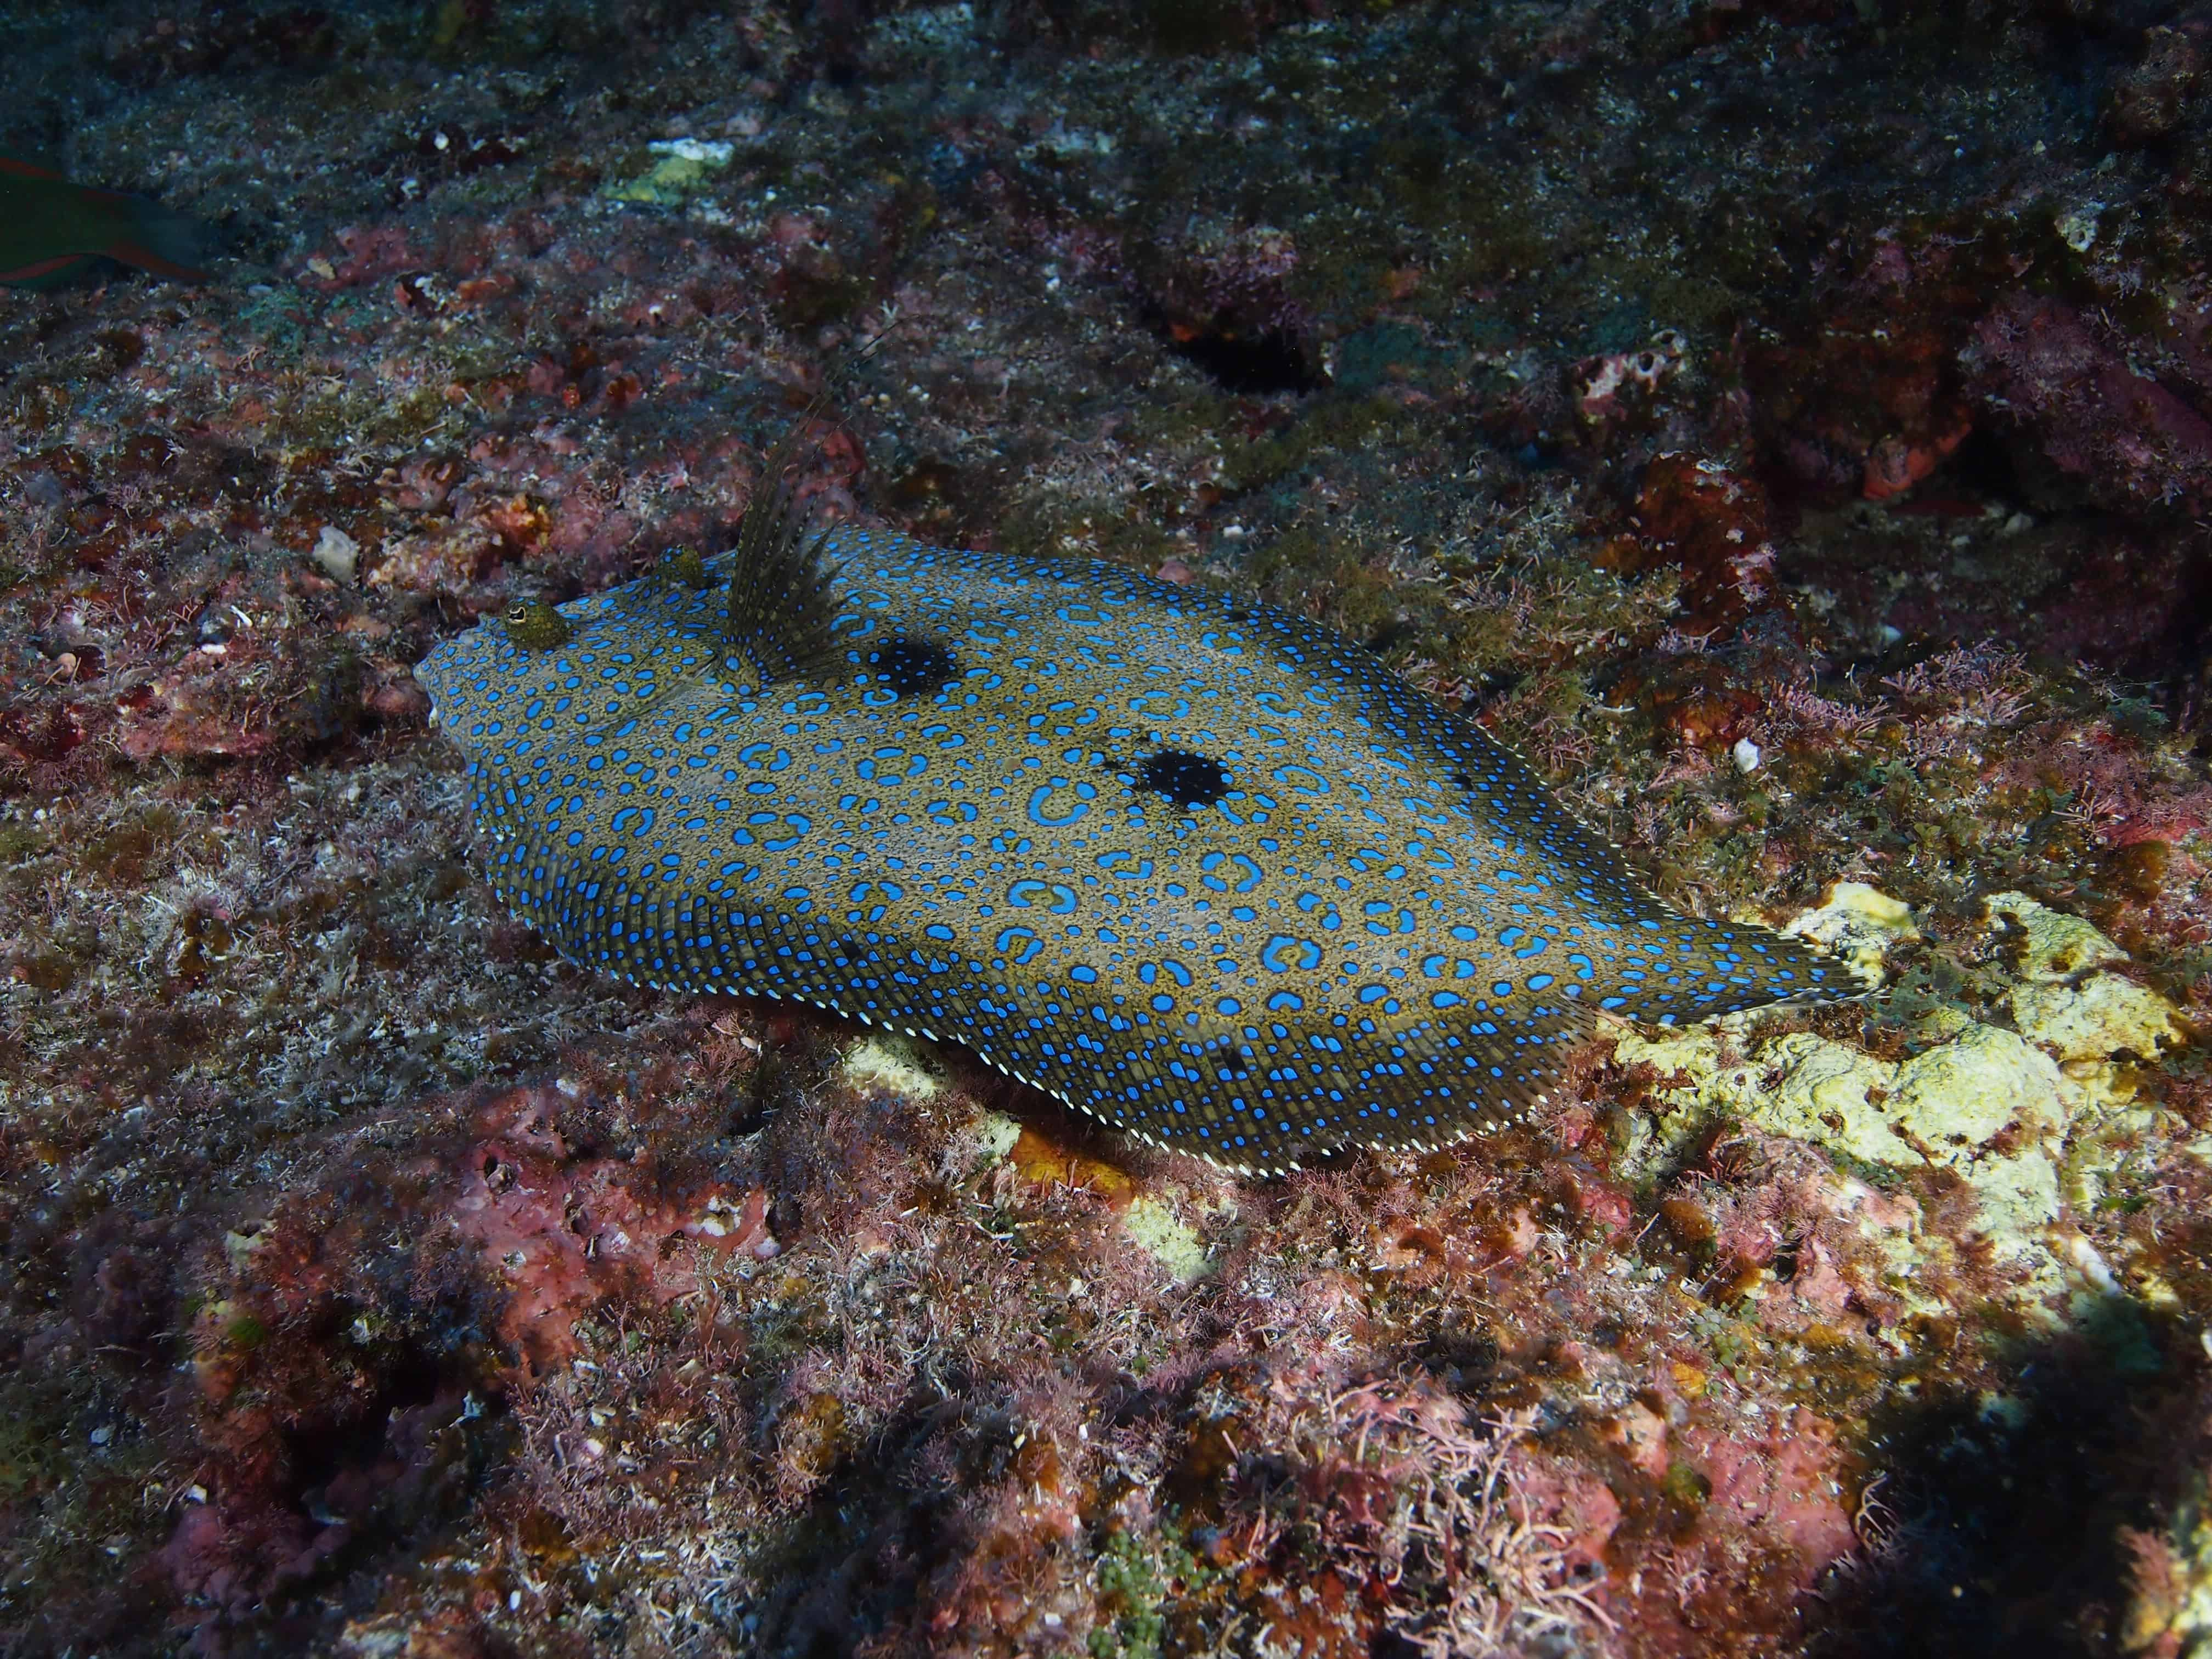 Starry flounder at the Boiler on our Channel Islands Dive adventures Socorro trip aboard the Nautilus Explorer